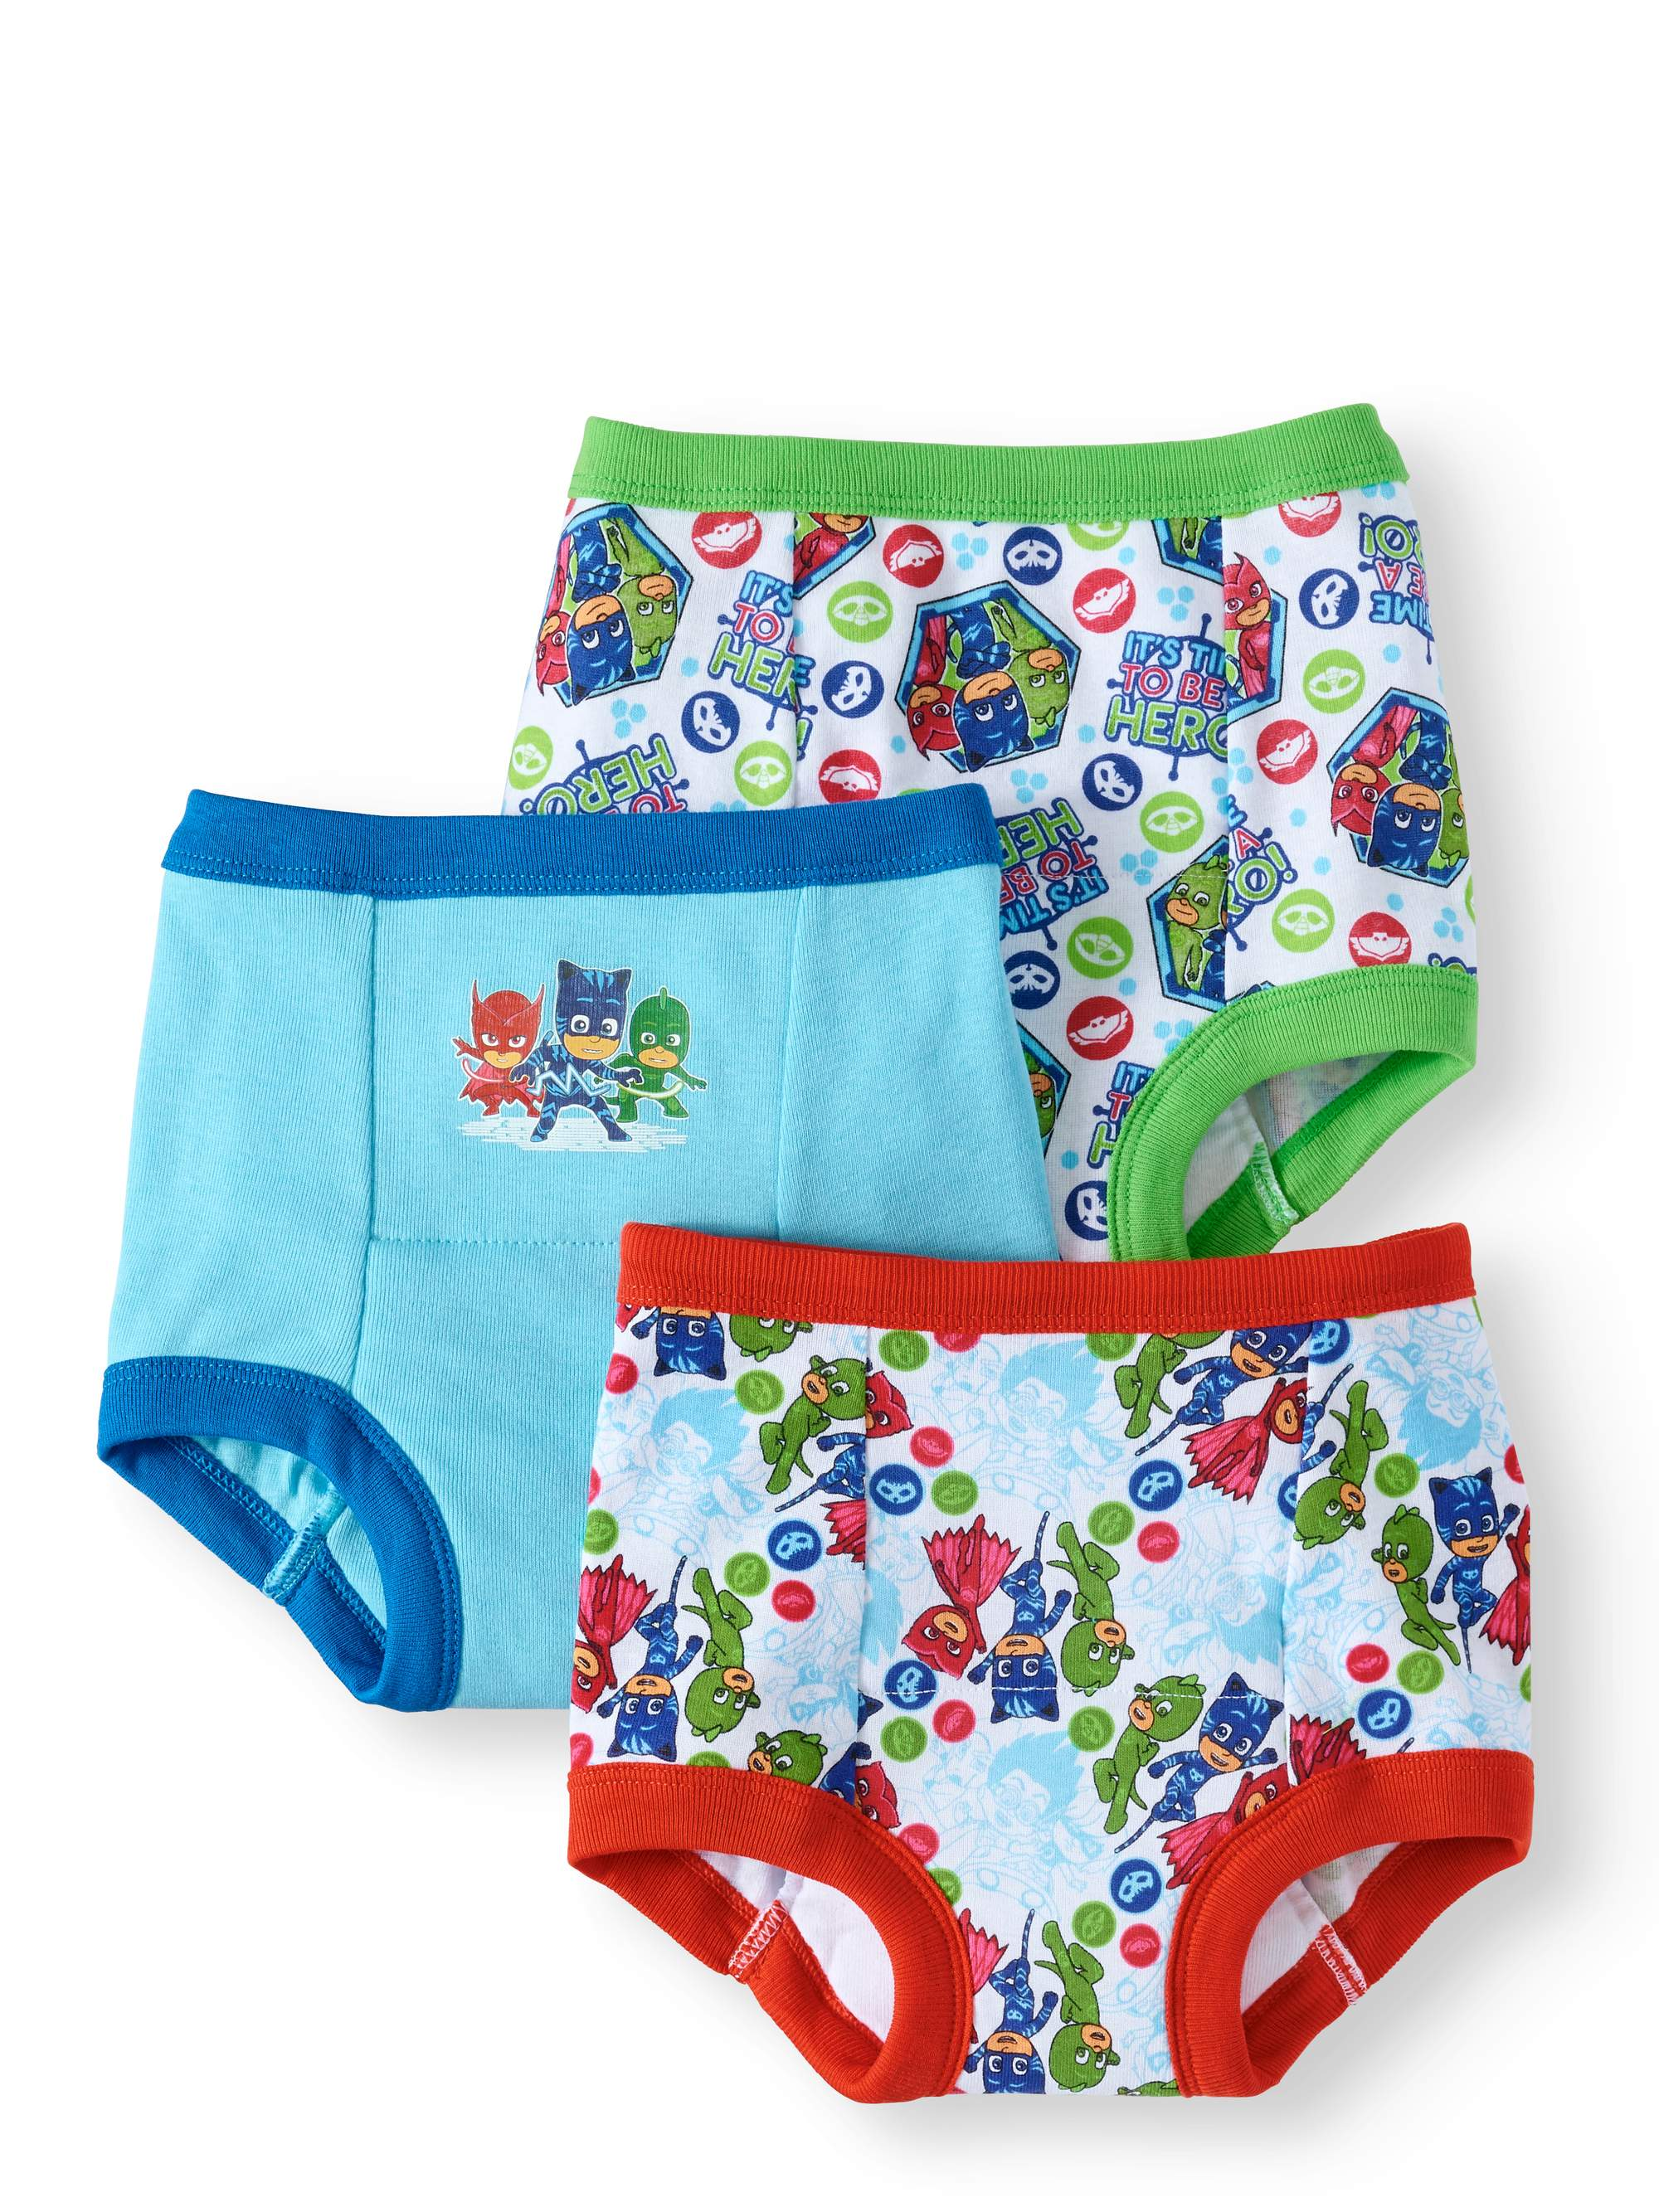 PJ Masks Toddler Boys Briefs 3 Packs of 3-9 Pairs Total Size 2T//3T